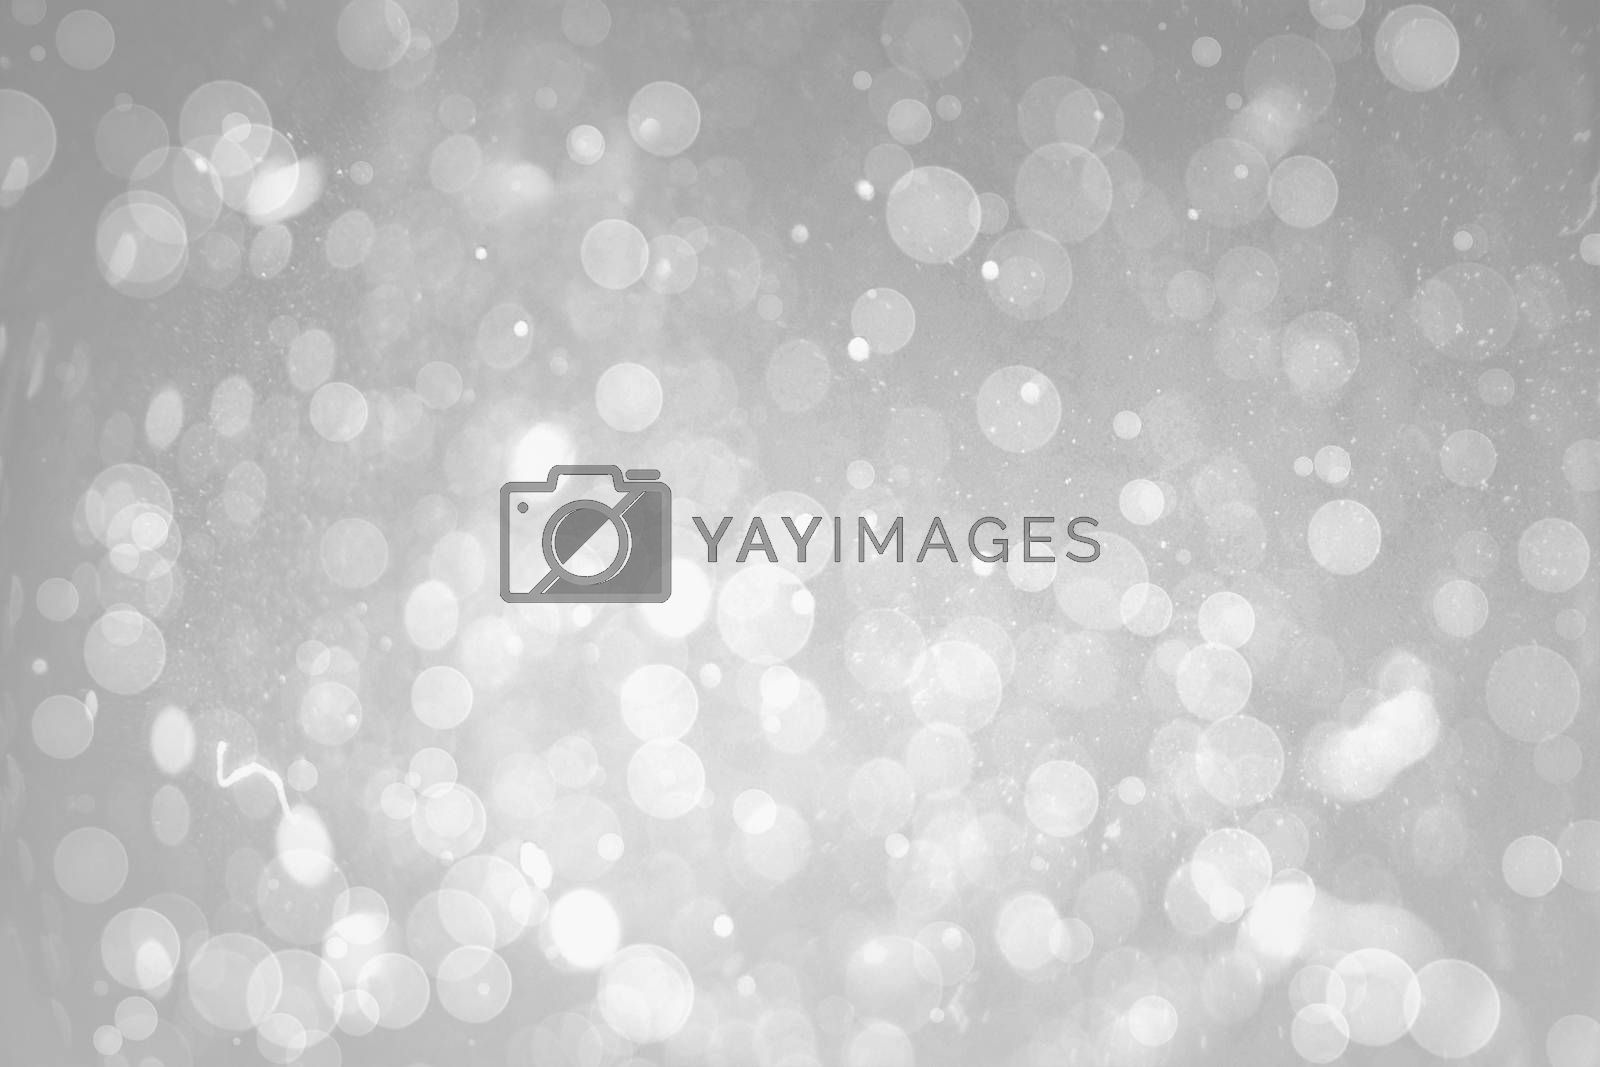 Royalty free image of Grey abstract light spot design by Wavebreakmedia